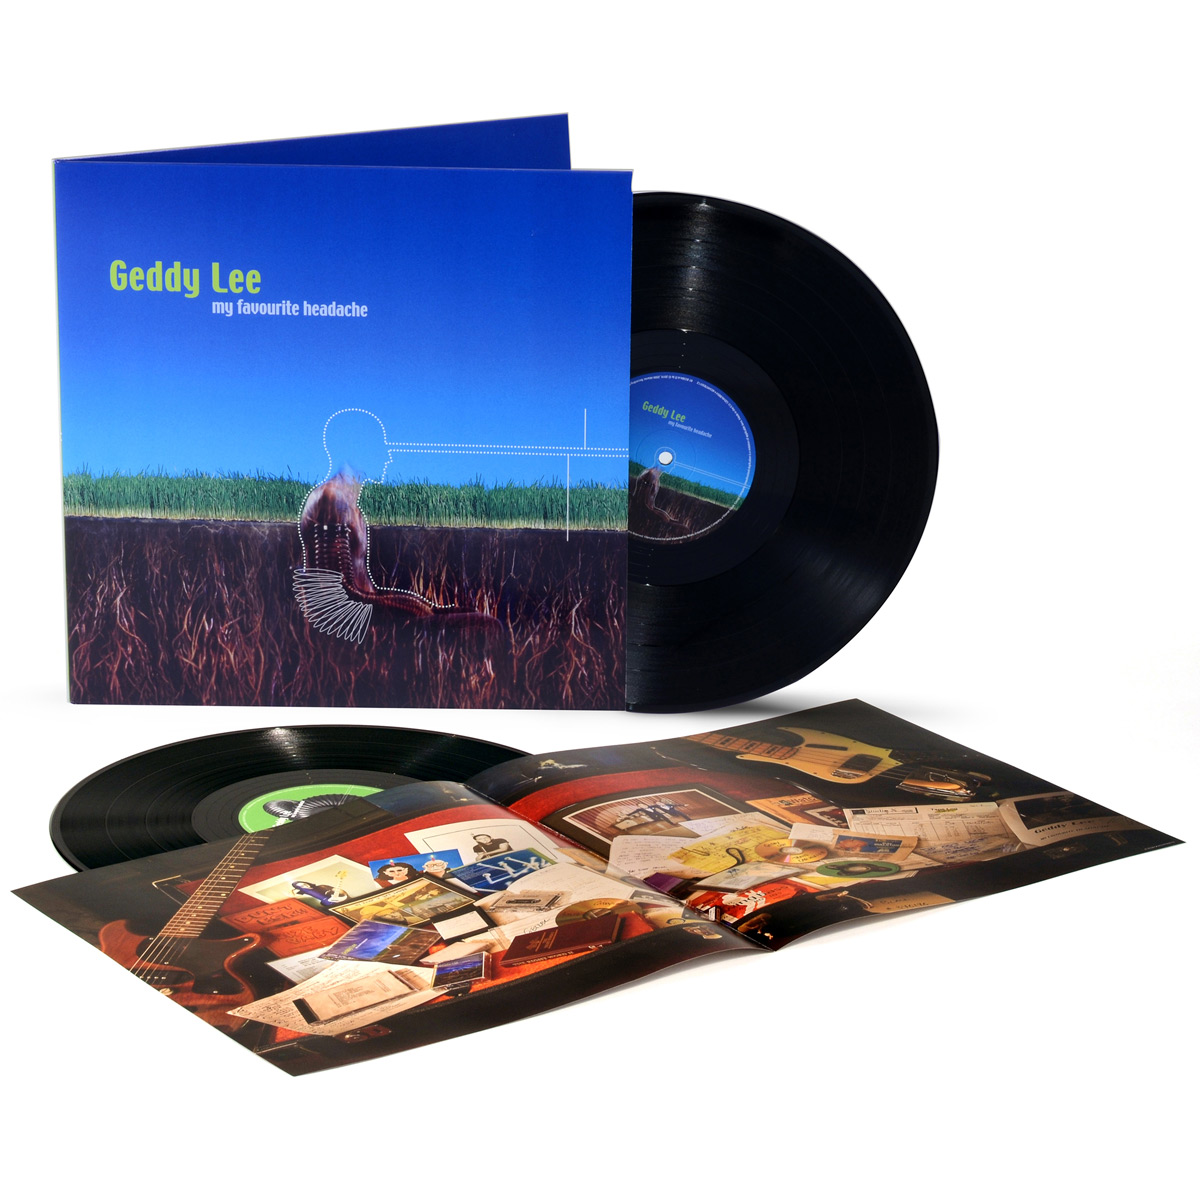 Geddy Lee - My Favourite Headache 2LP Vinyl